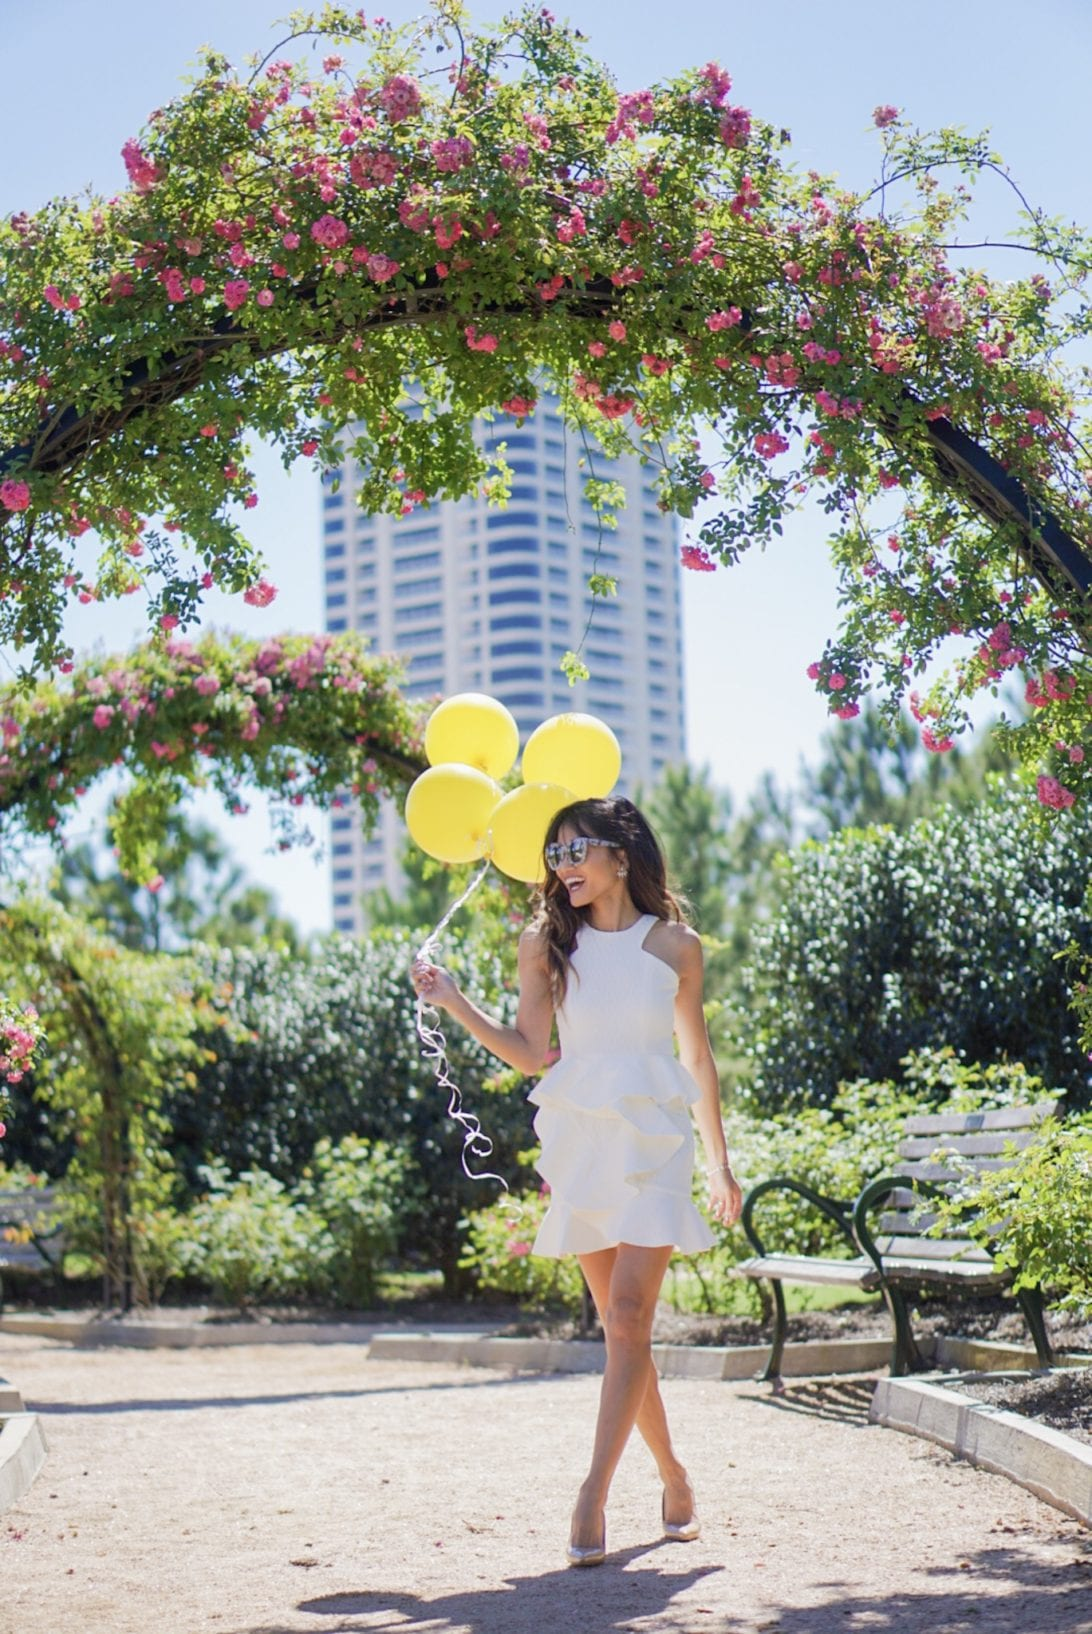 birthday outfit, balloons, park, white ruffle dress